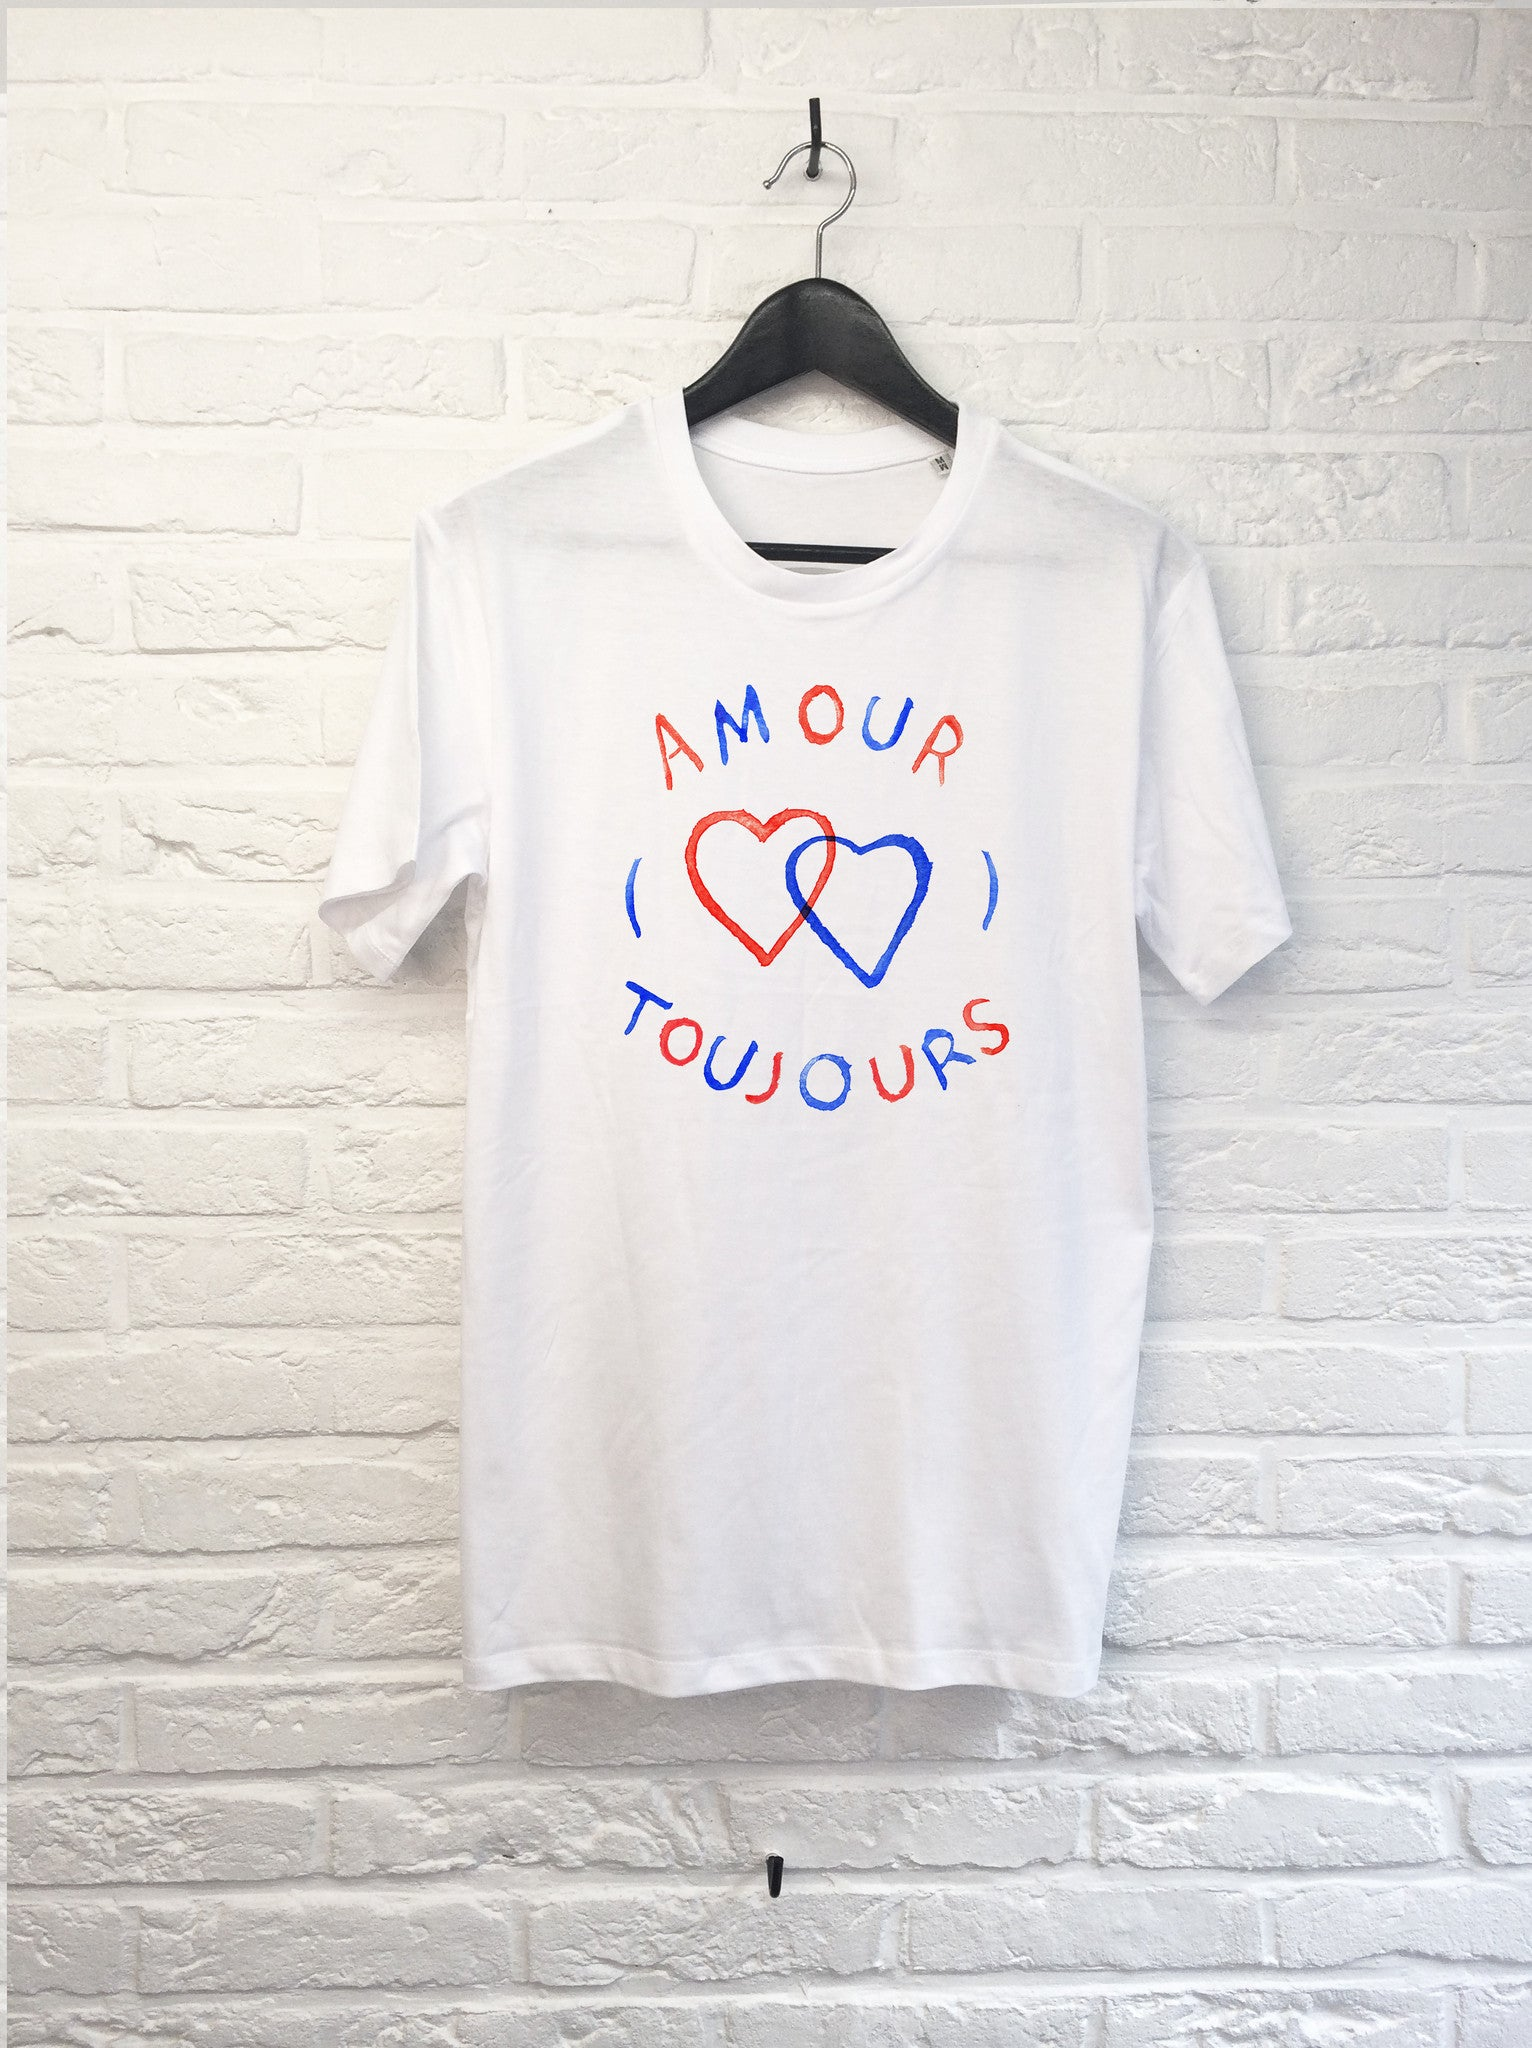 TH Gallery - Amour Toujours-T shirt-Atelier Amelot